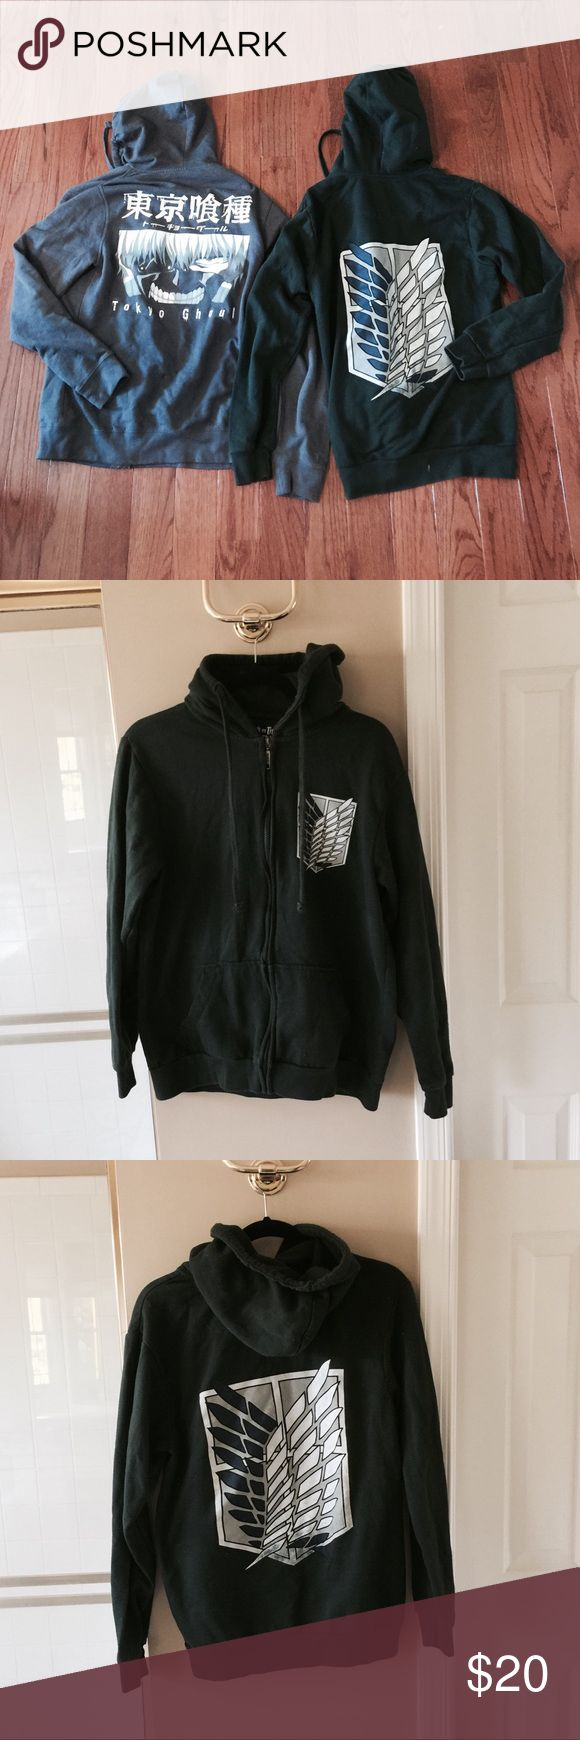 Anime zip up hoodies lot of 2 Selling two anime zip up hoodies: 1 gray Tokyo ghoul hoodie (S). 1 dark green attack on titan hoodie (M). Different sizes, but both can fit either S or M in my opinion. All in good used condition. Yours for cheap! Make me an offer :) Hot Topic Sweaters